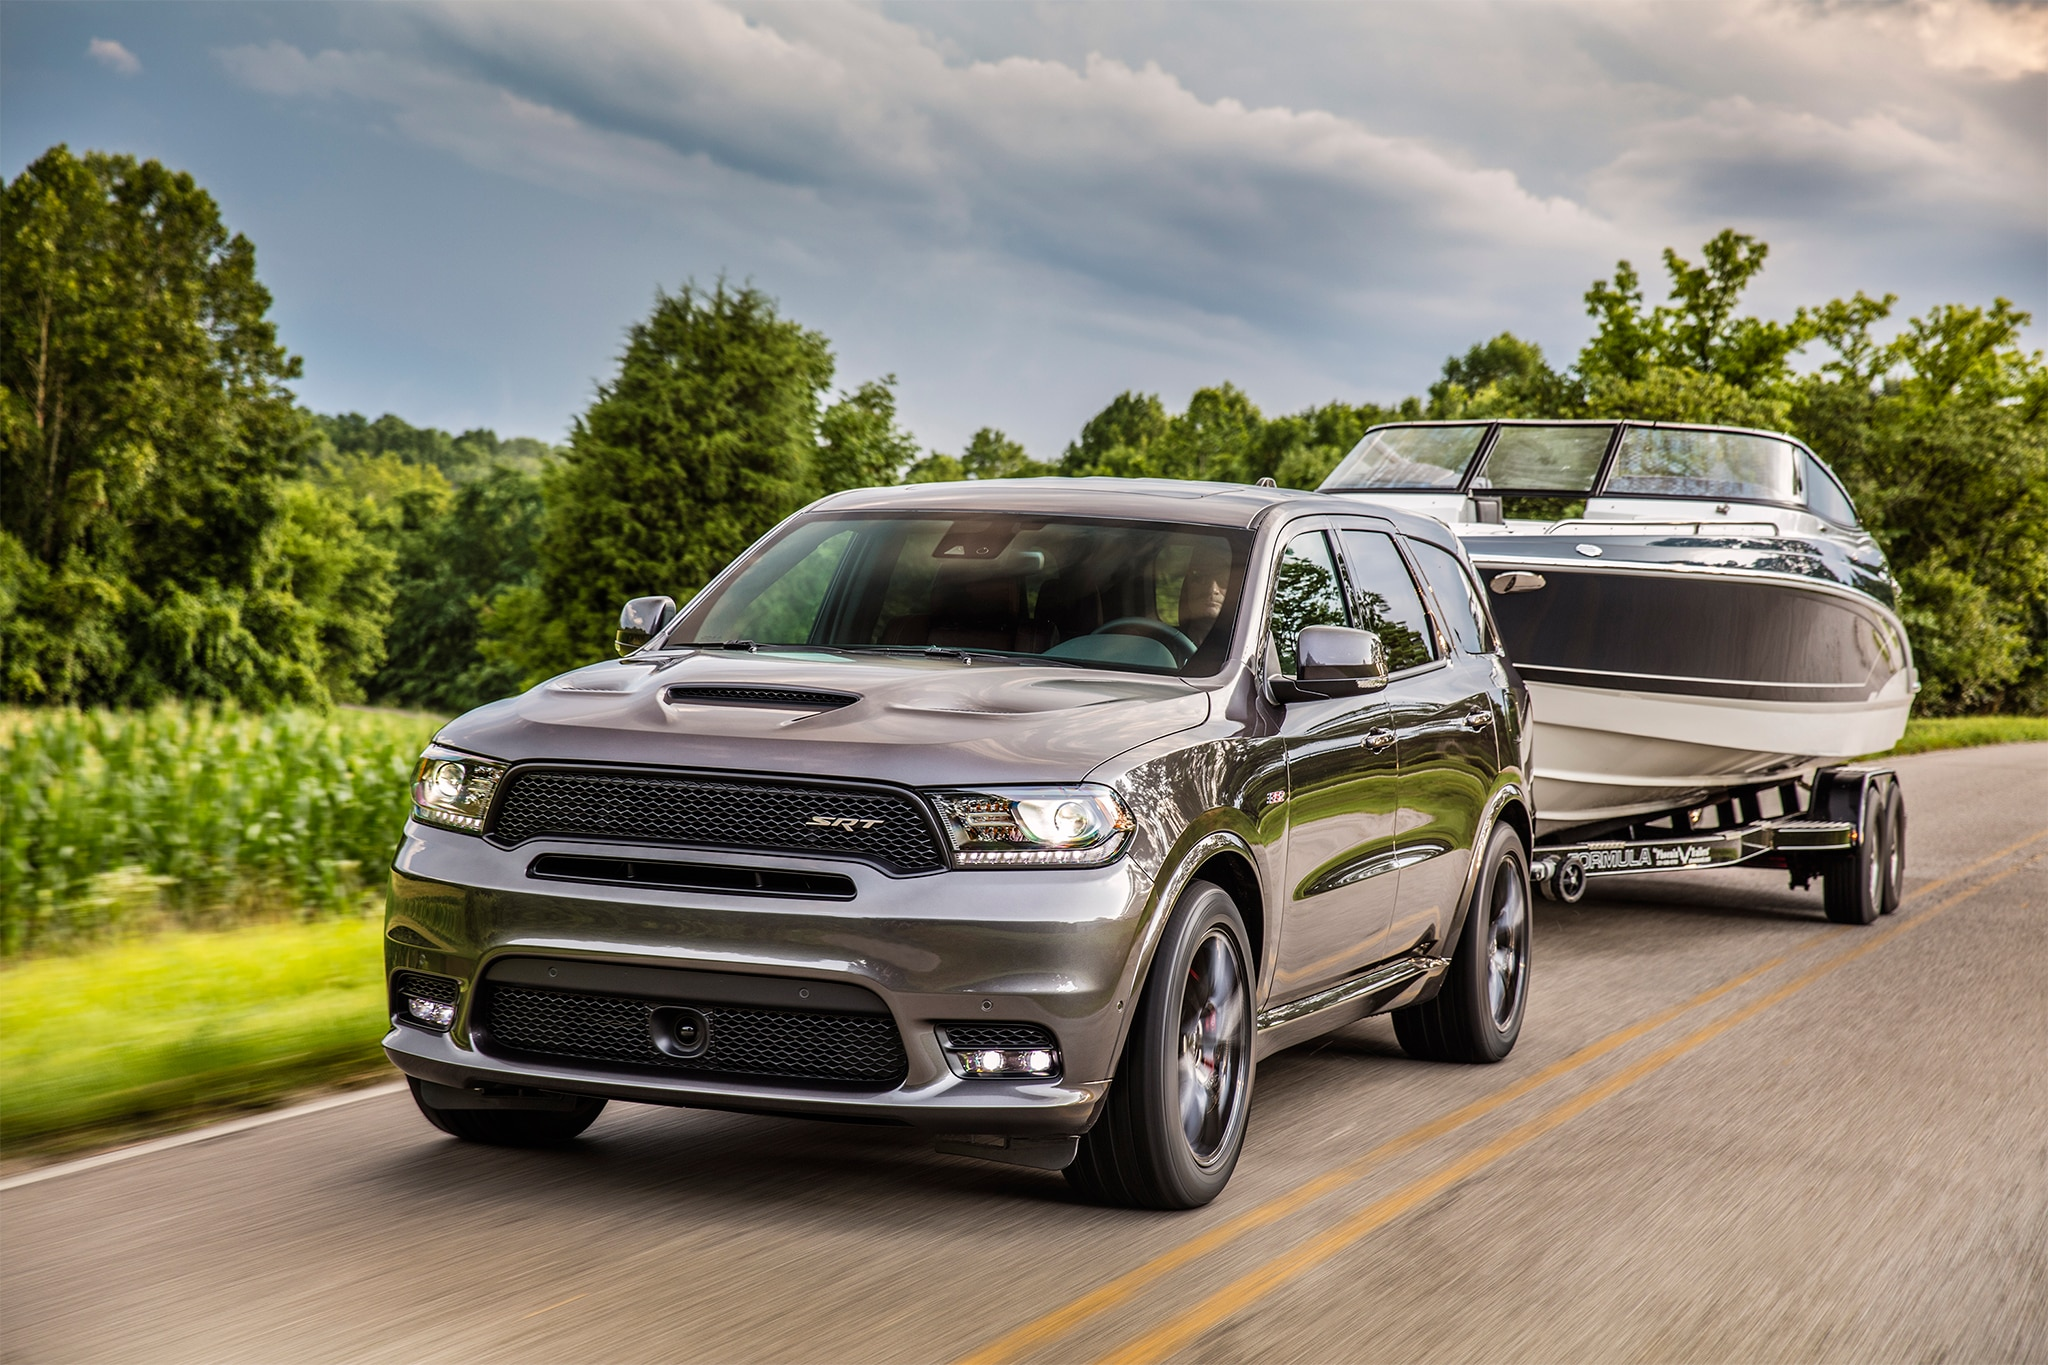 2018 Dodge Durango Srt First Drive Edmunds Autos Post